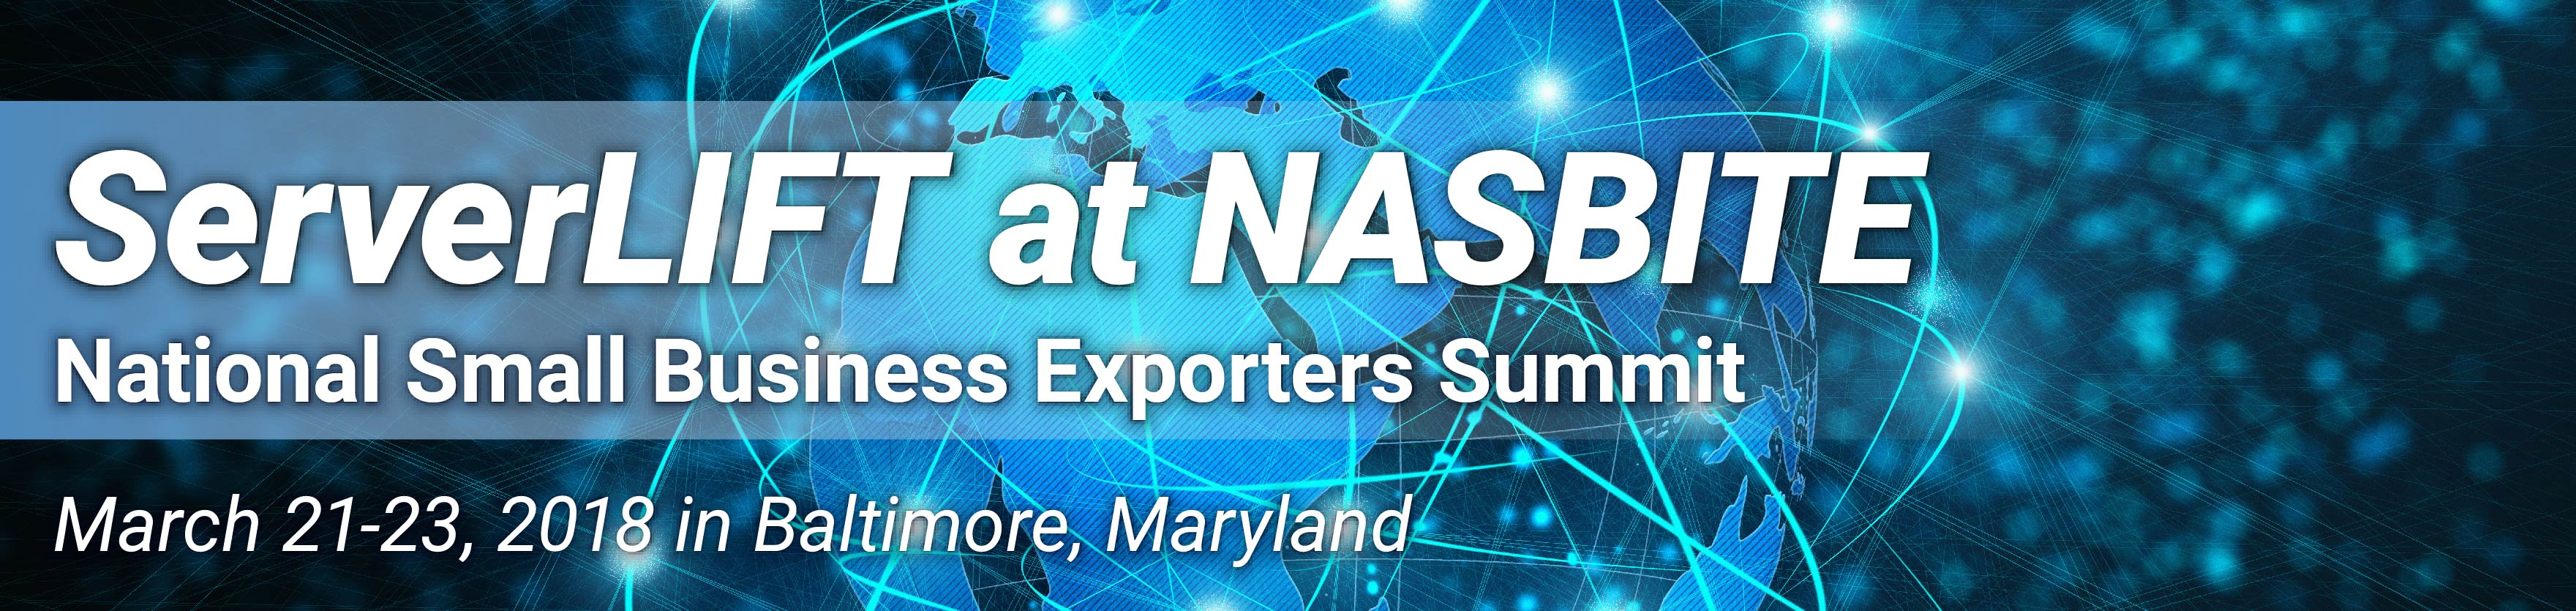 CEO Ray Zuckerman Speaks at the National Small Business Exporter Summit in Baltimore, Maryland